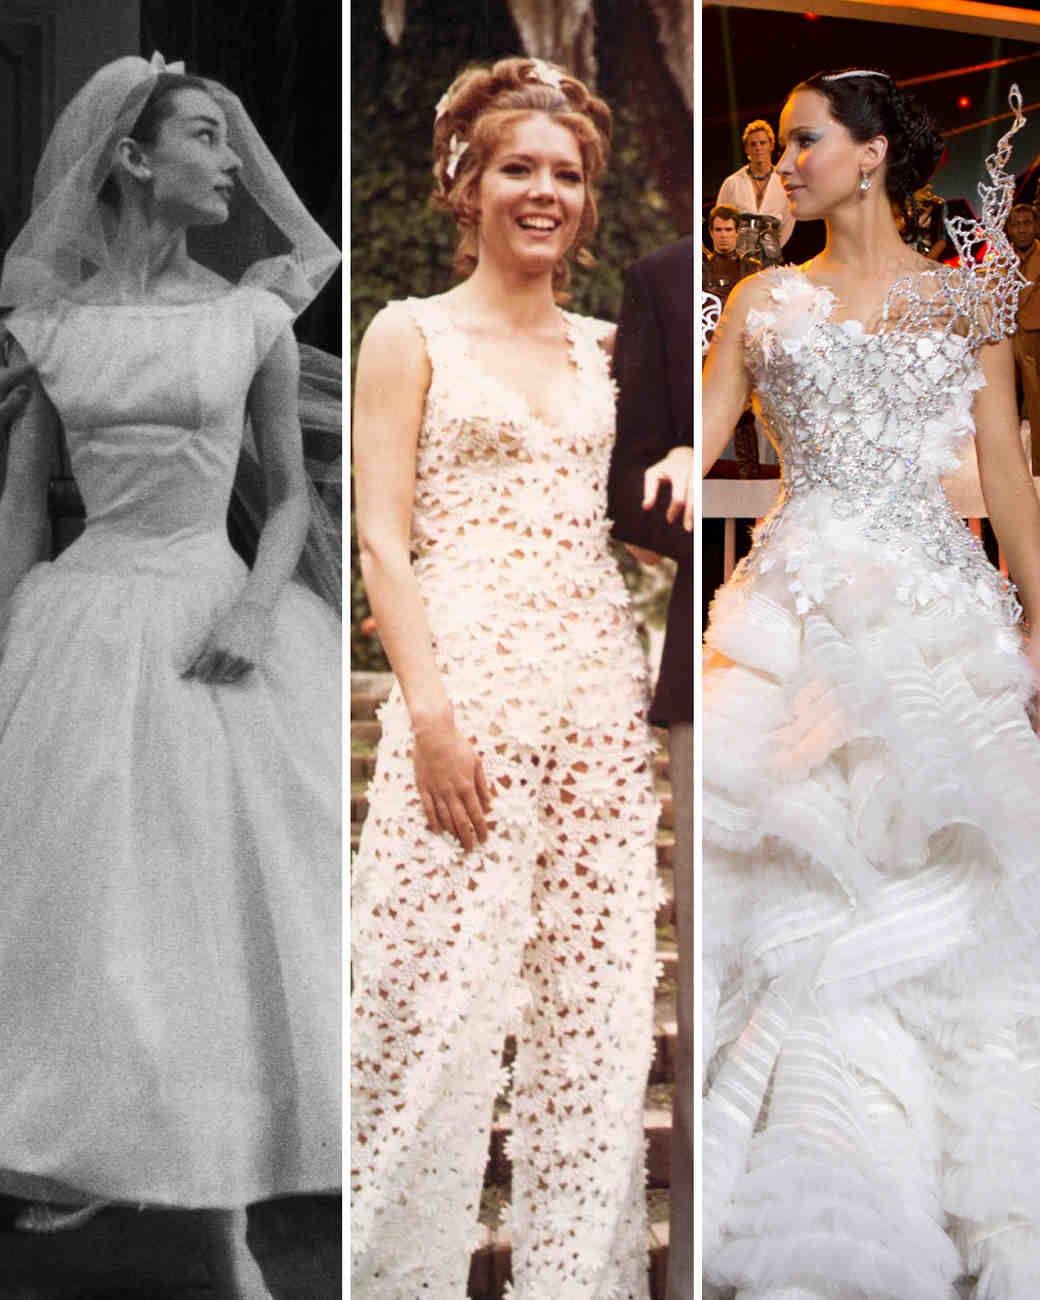 The Most Iconic Movie Wedding Dresses of All Time | Martha Stewart ...